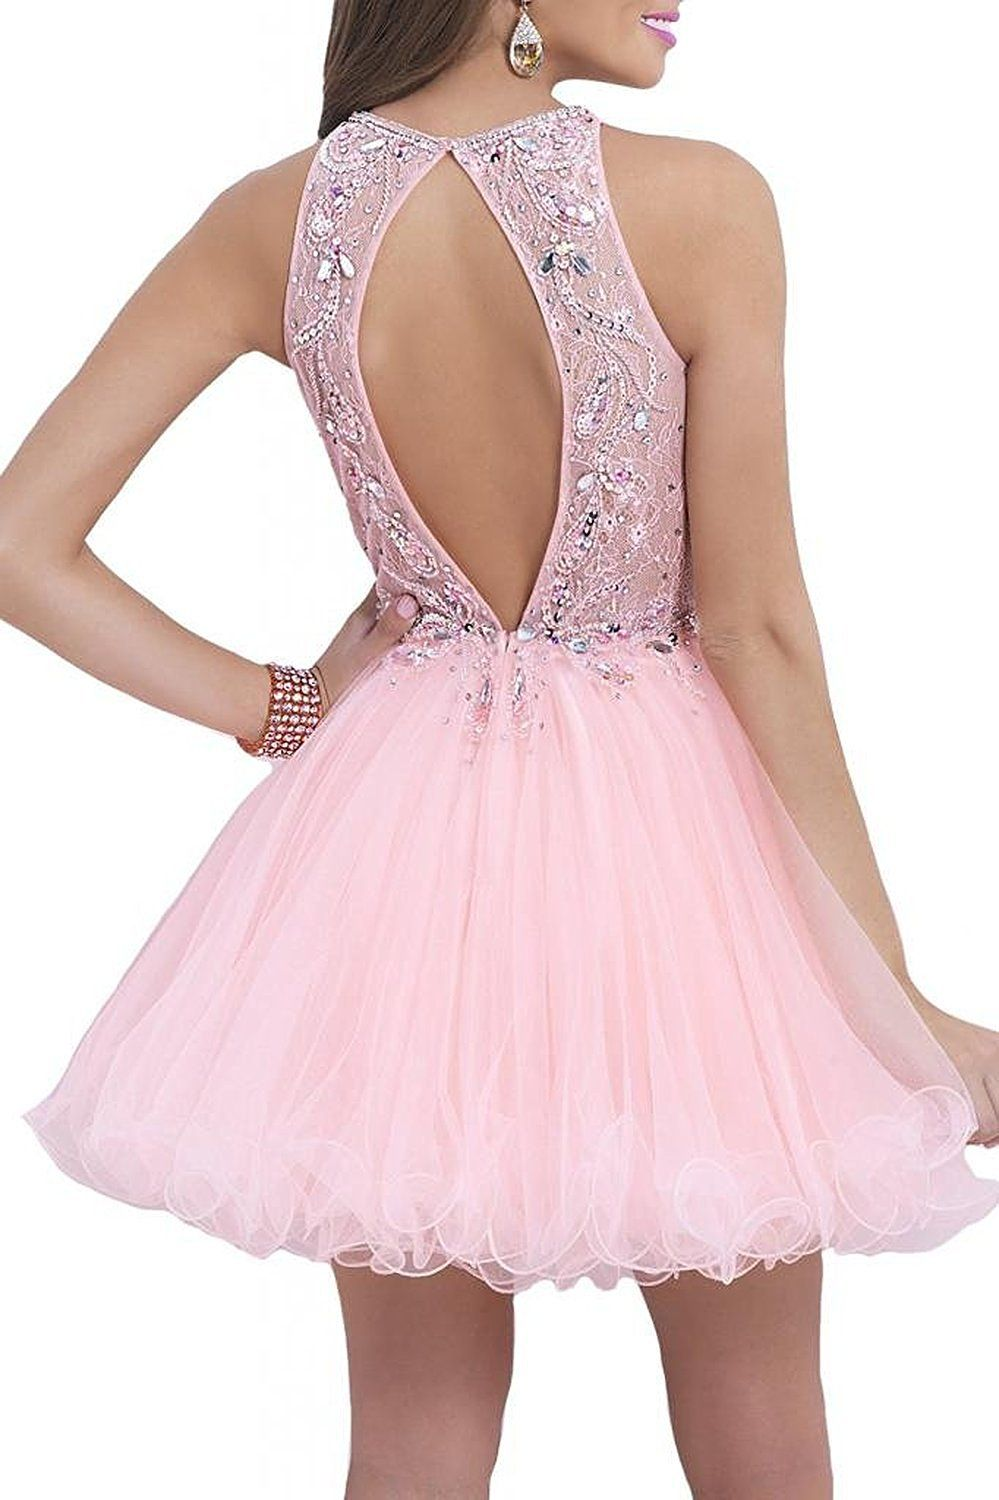 0d01a89d7341 Product not Available - Cute Dresses. Cute, chic and sexy pink prom dress!!  Halter Rhinestone Prom Dress Backless Homecoming